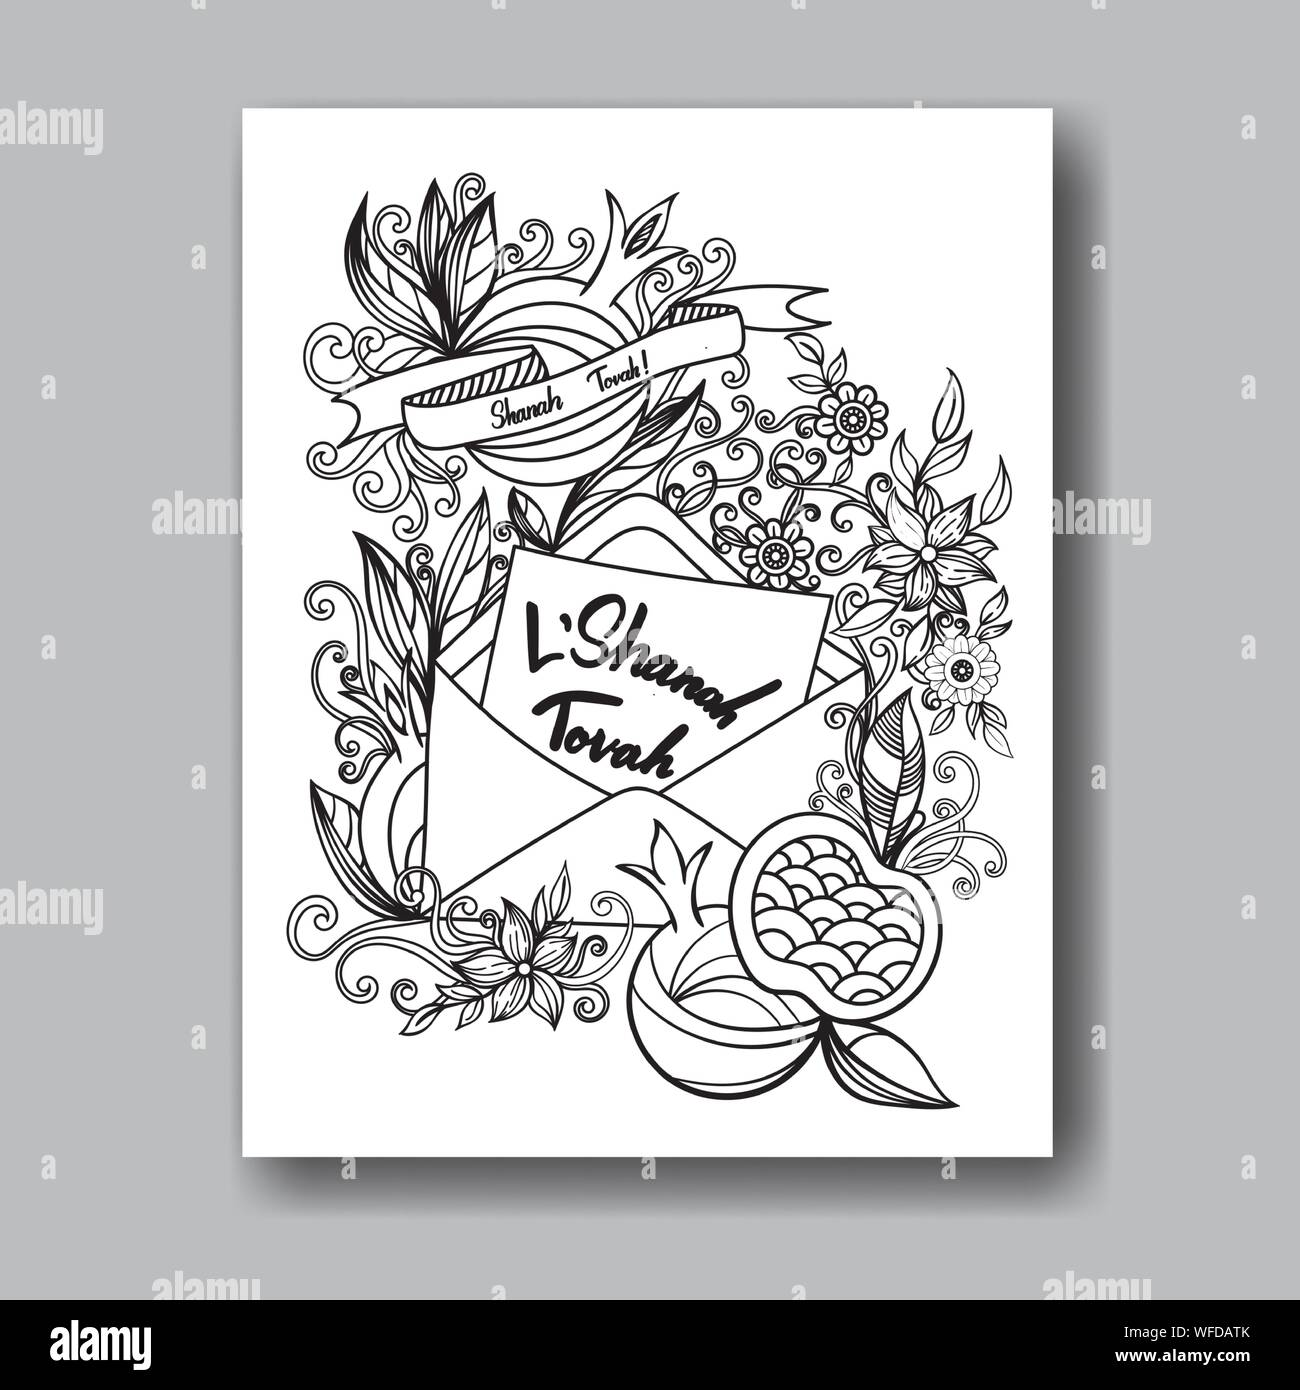 Rosh Hashanah Coloring Page Stock Vector - Illustration of ... | 1390x1300